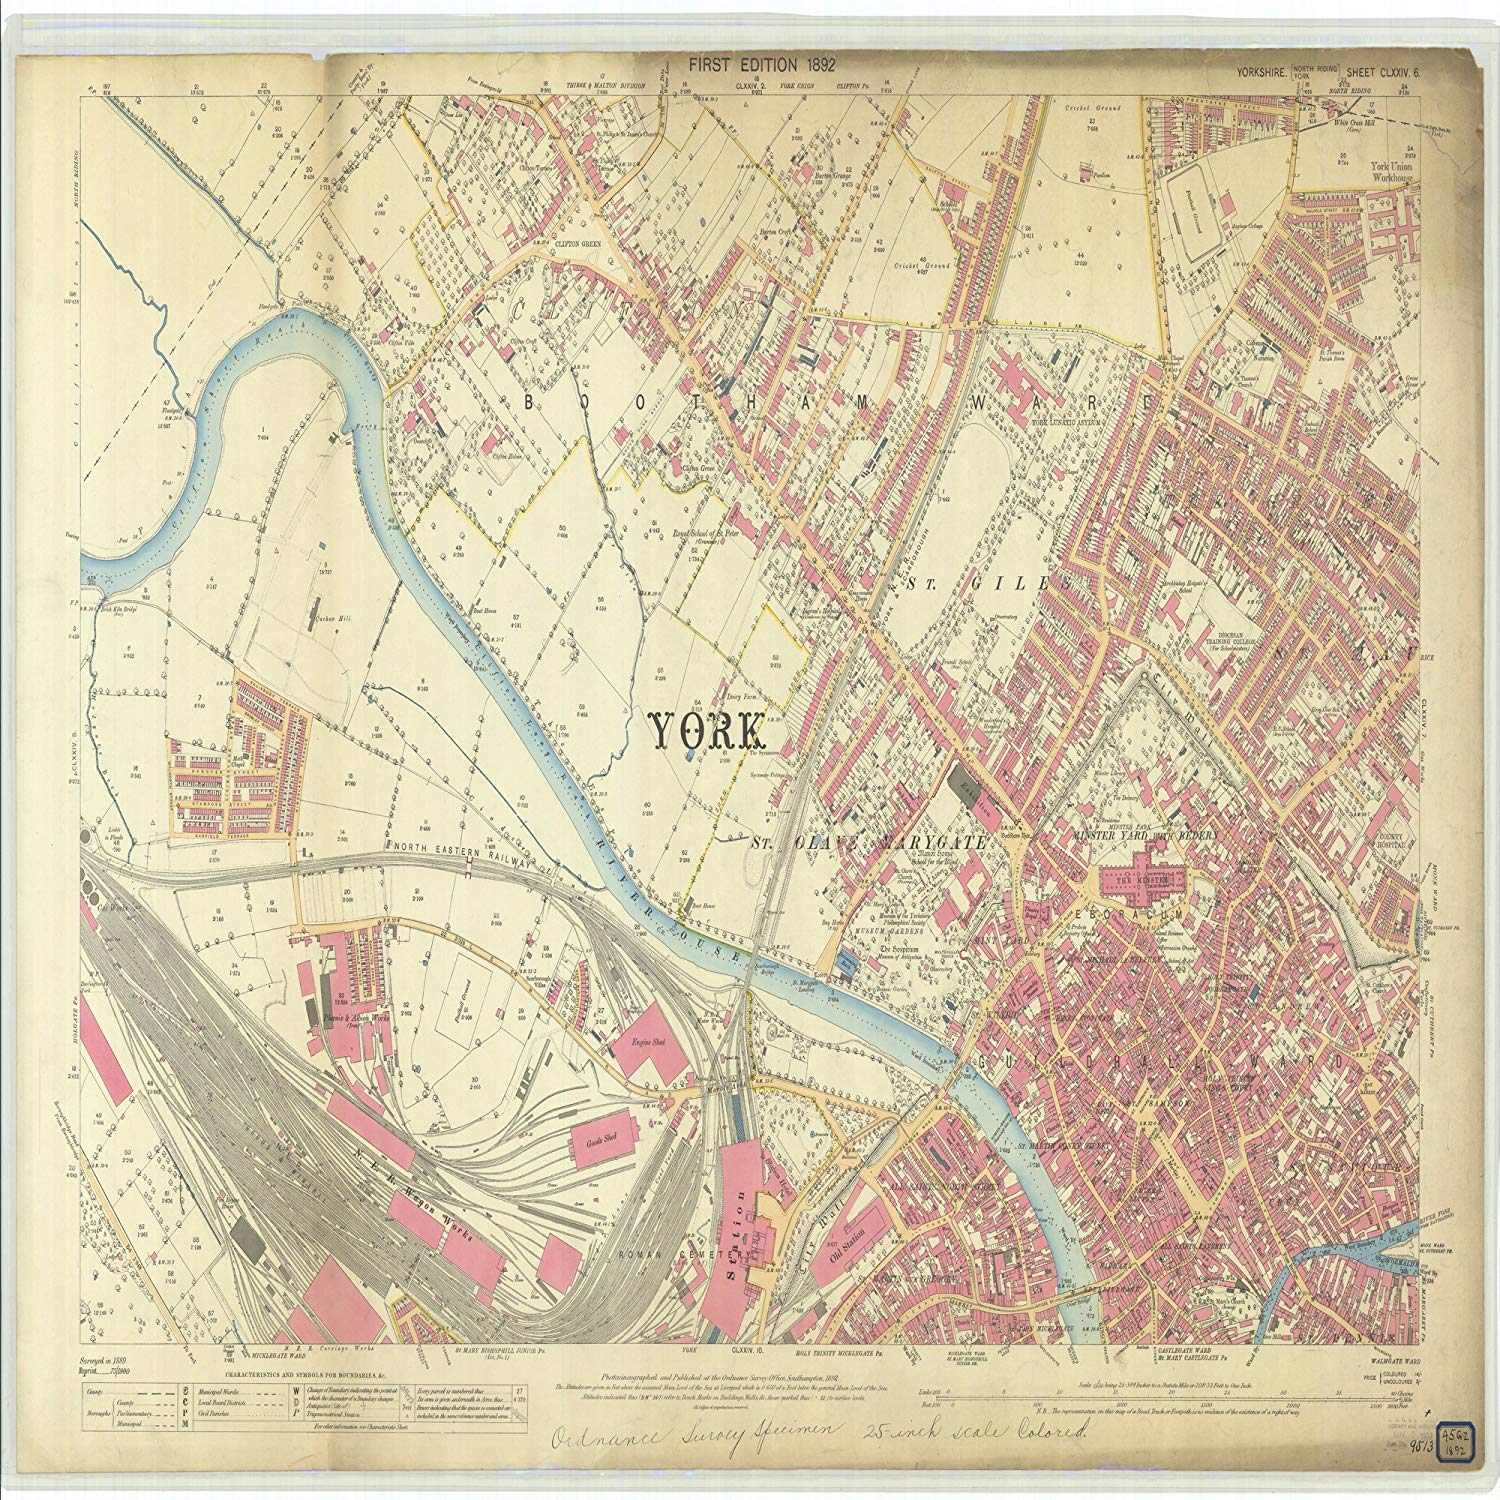 Vintography 24 x 36 Giclee Print Nautical Map Image Yorkshire 1892 NOAA 69a